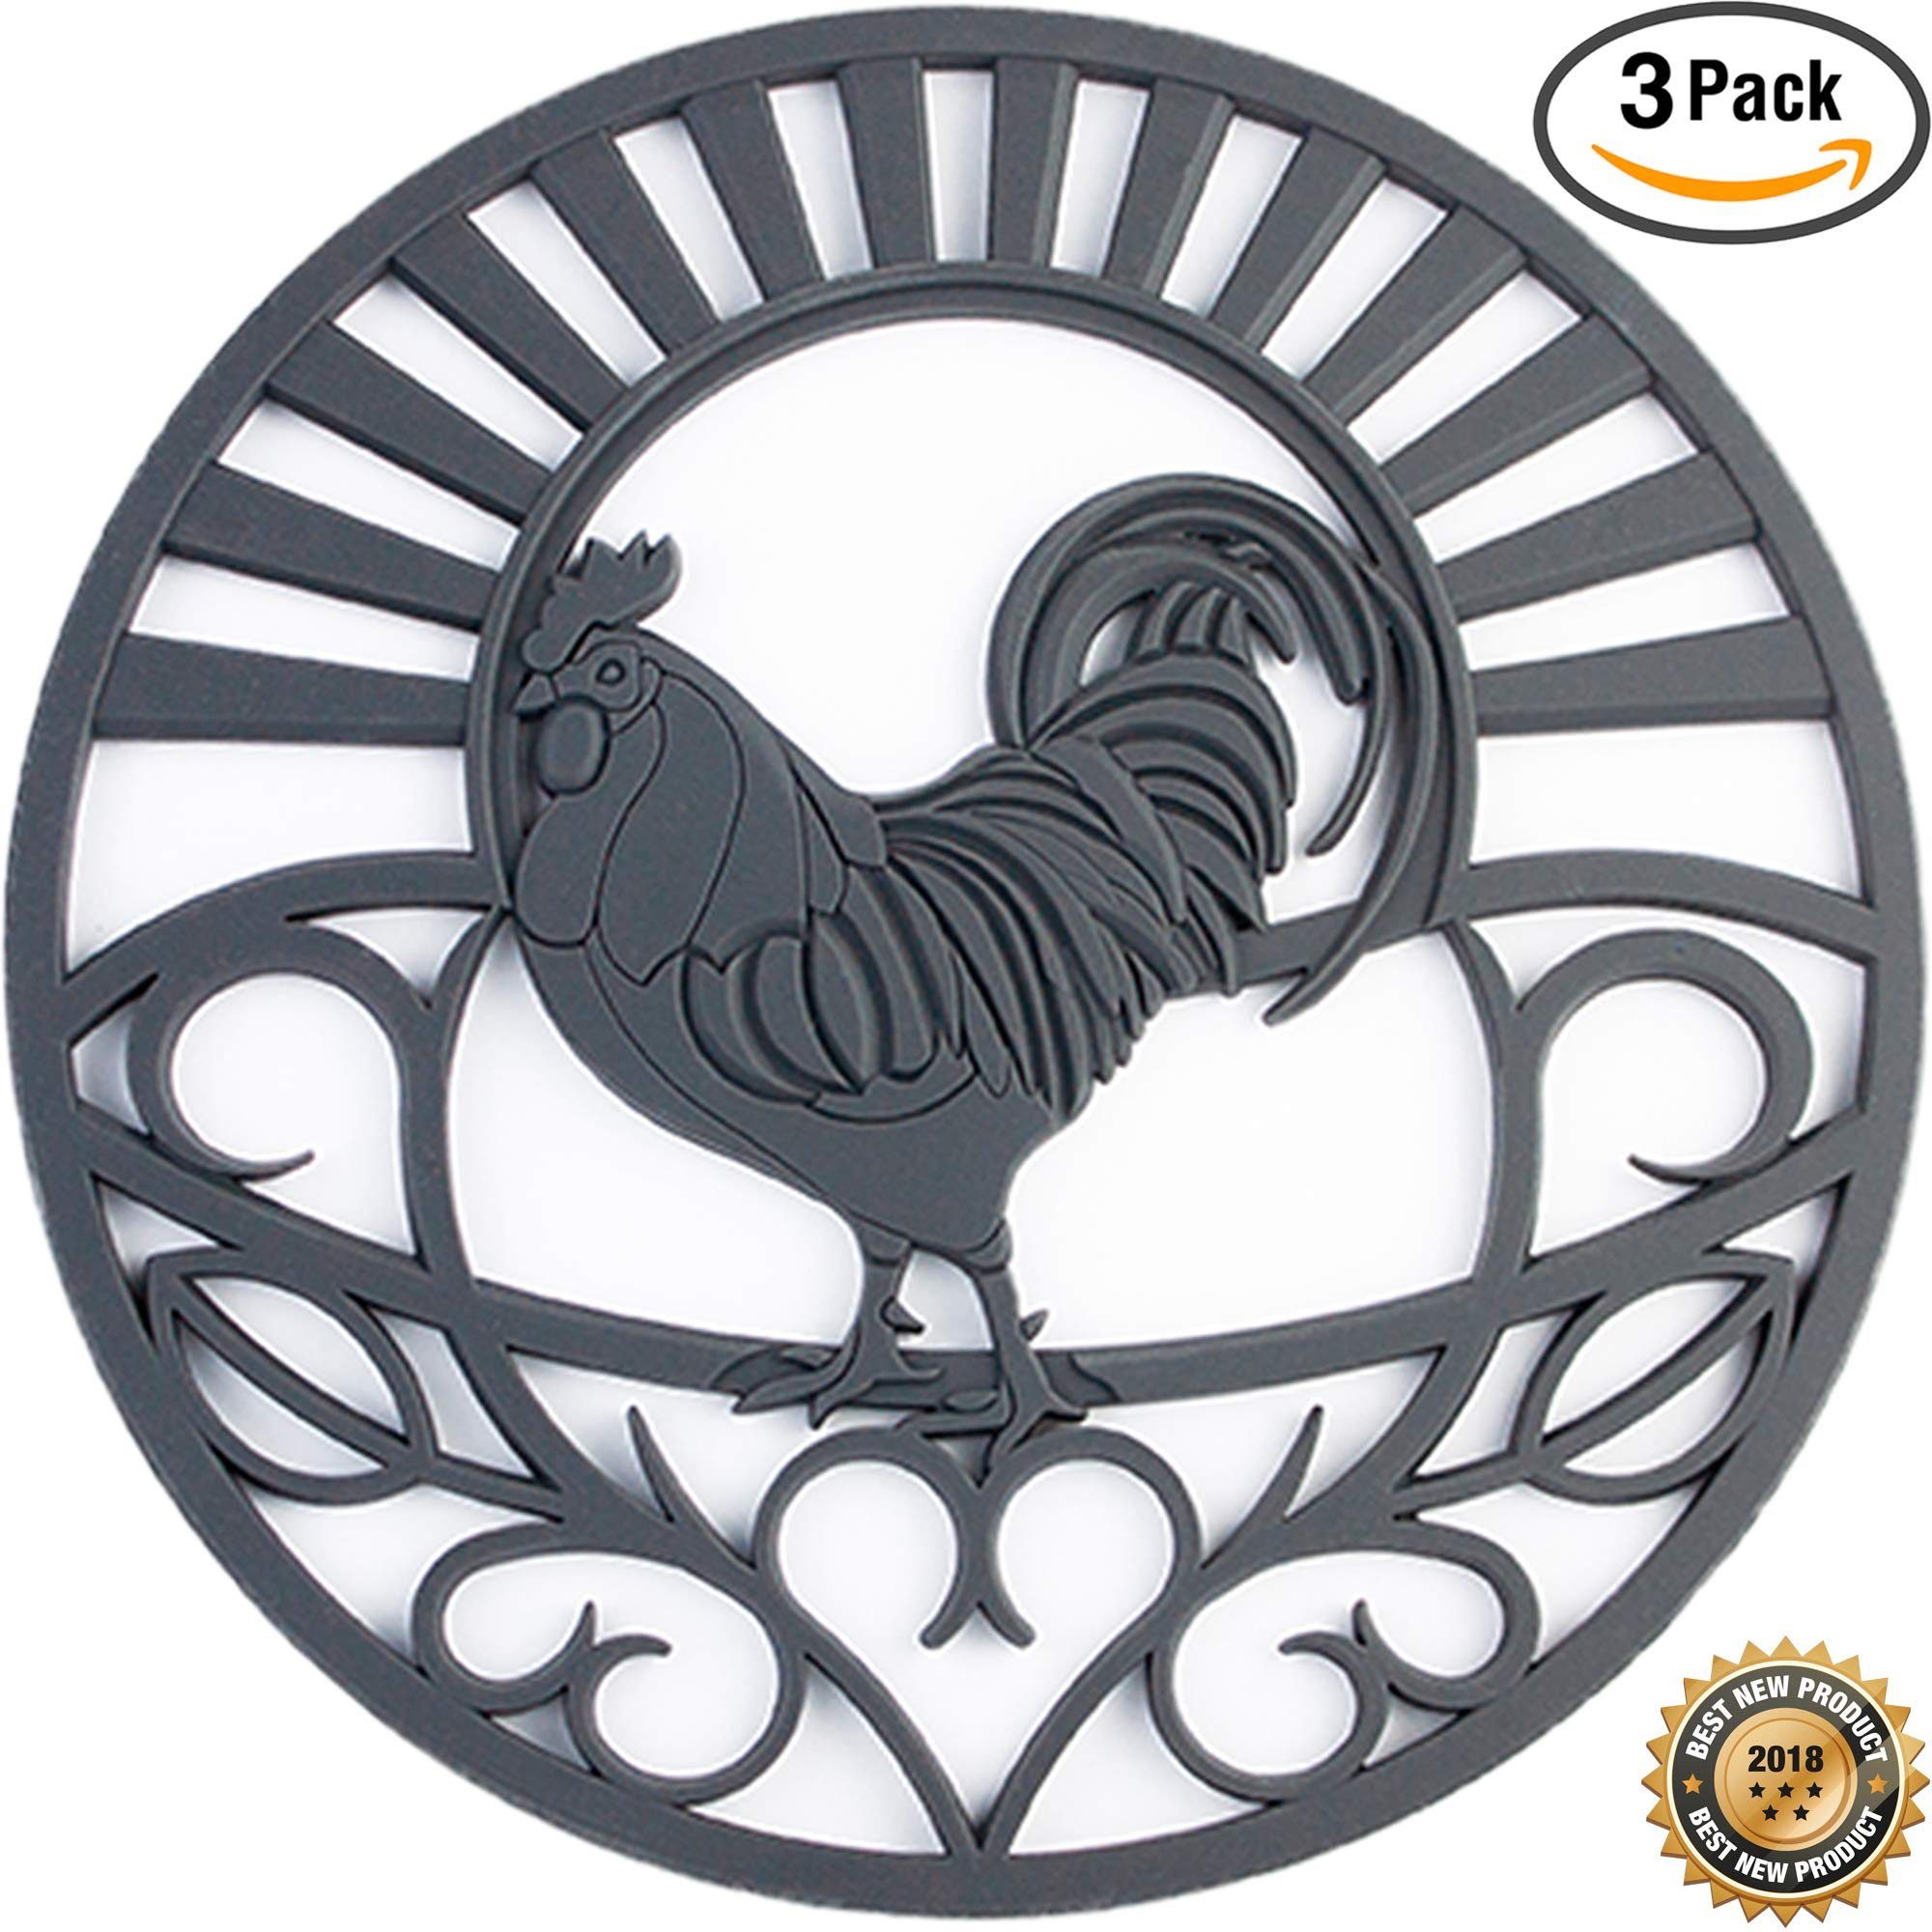 Silicone Trivets Set For Hot Dishes | Modern Kitchen Hot Pads For Pots & Pans | Country Rooster Design (Symbol of Prosperity & Good Luck) Mimics A Cast Iron Trivet | 7.5'' Round, Set of 3, Dark Gray